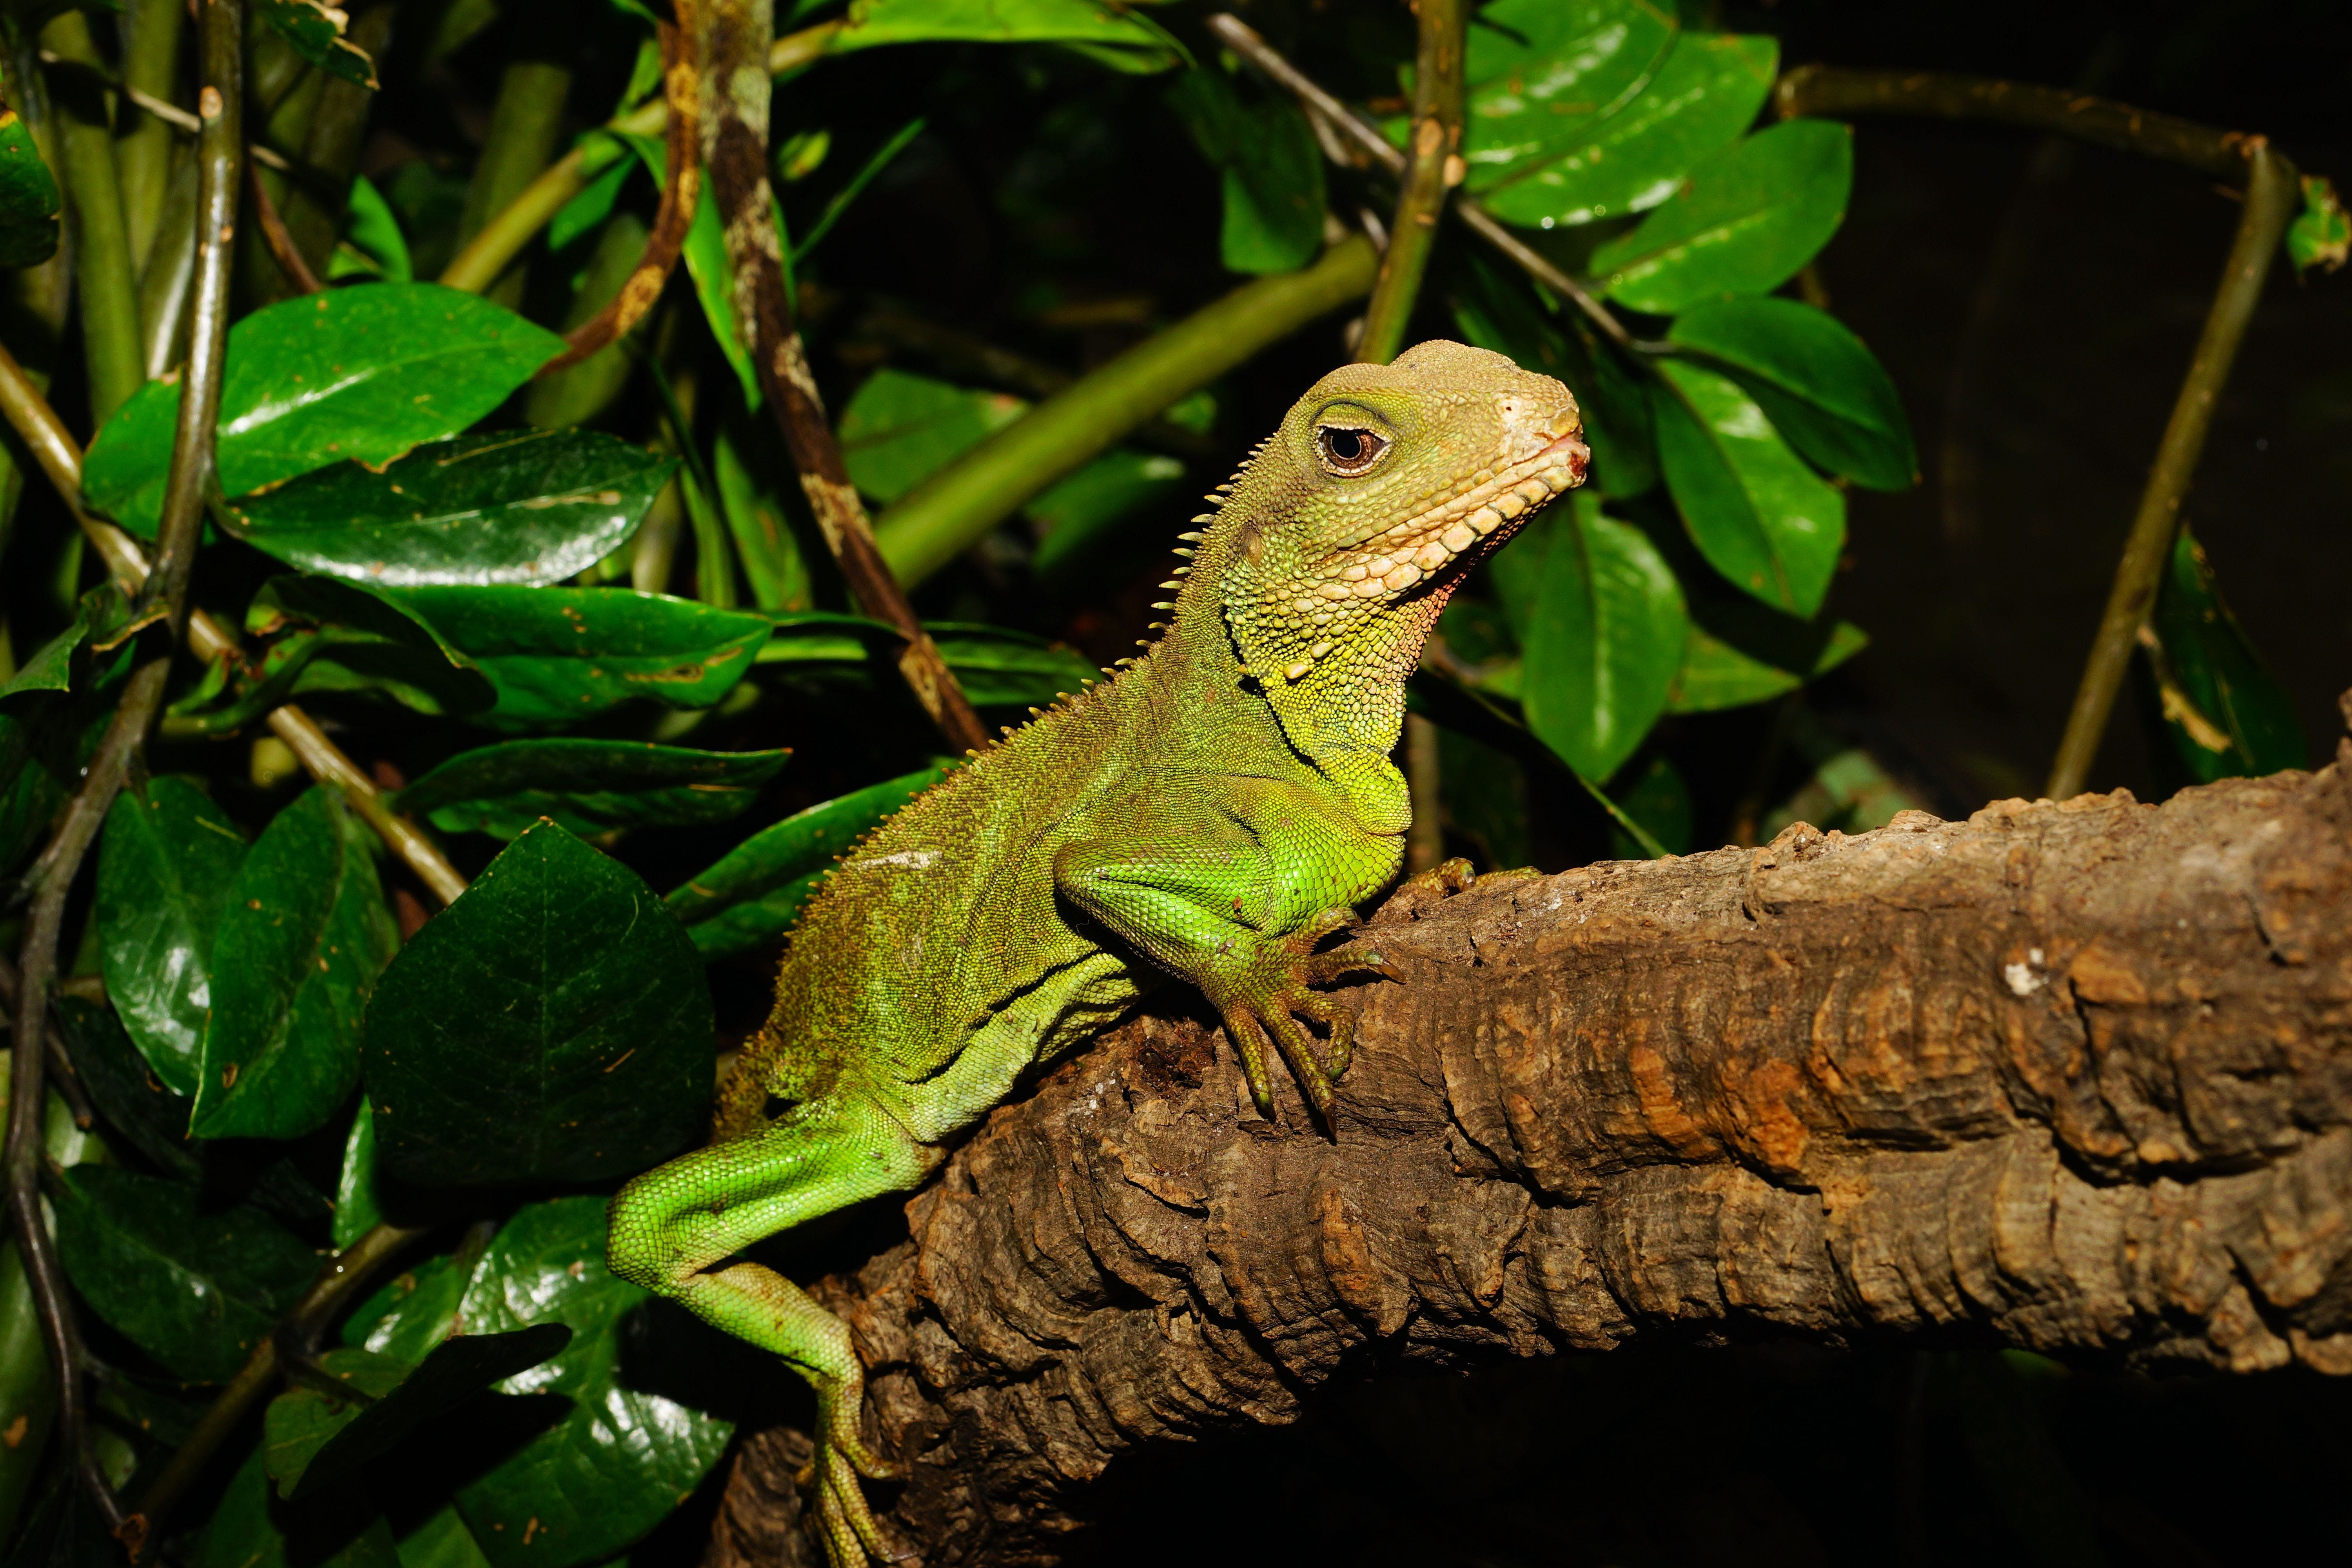 Green Lizard on Brown Tree Branch Beside Green Leaves